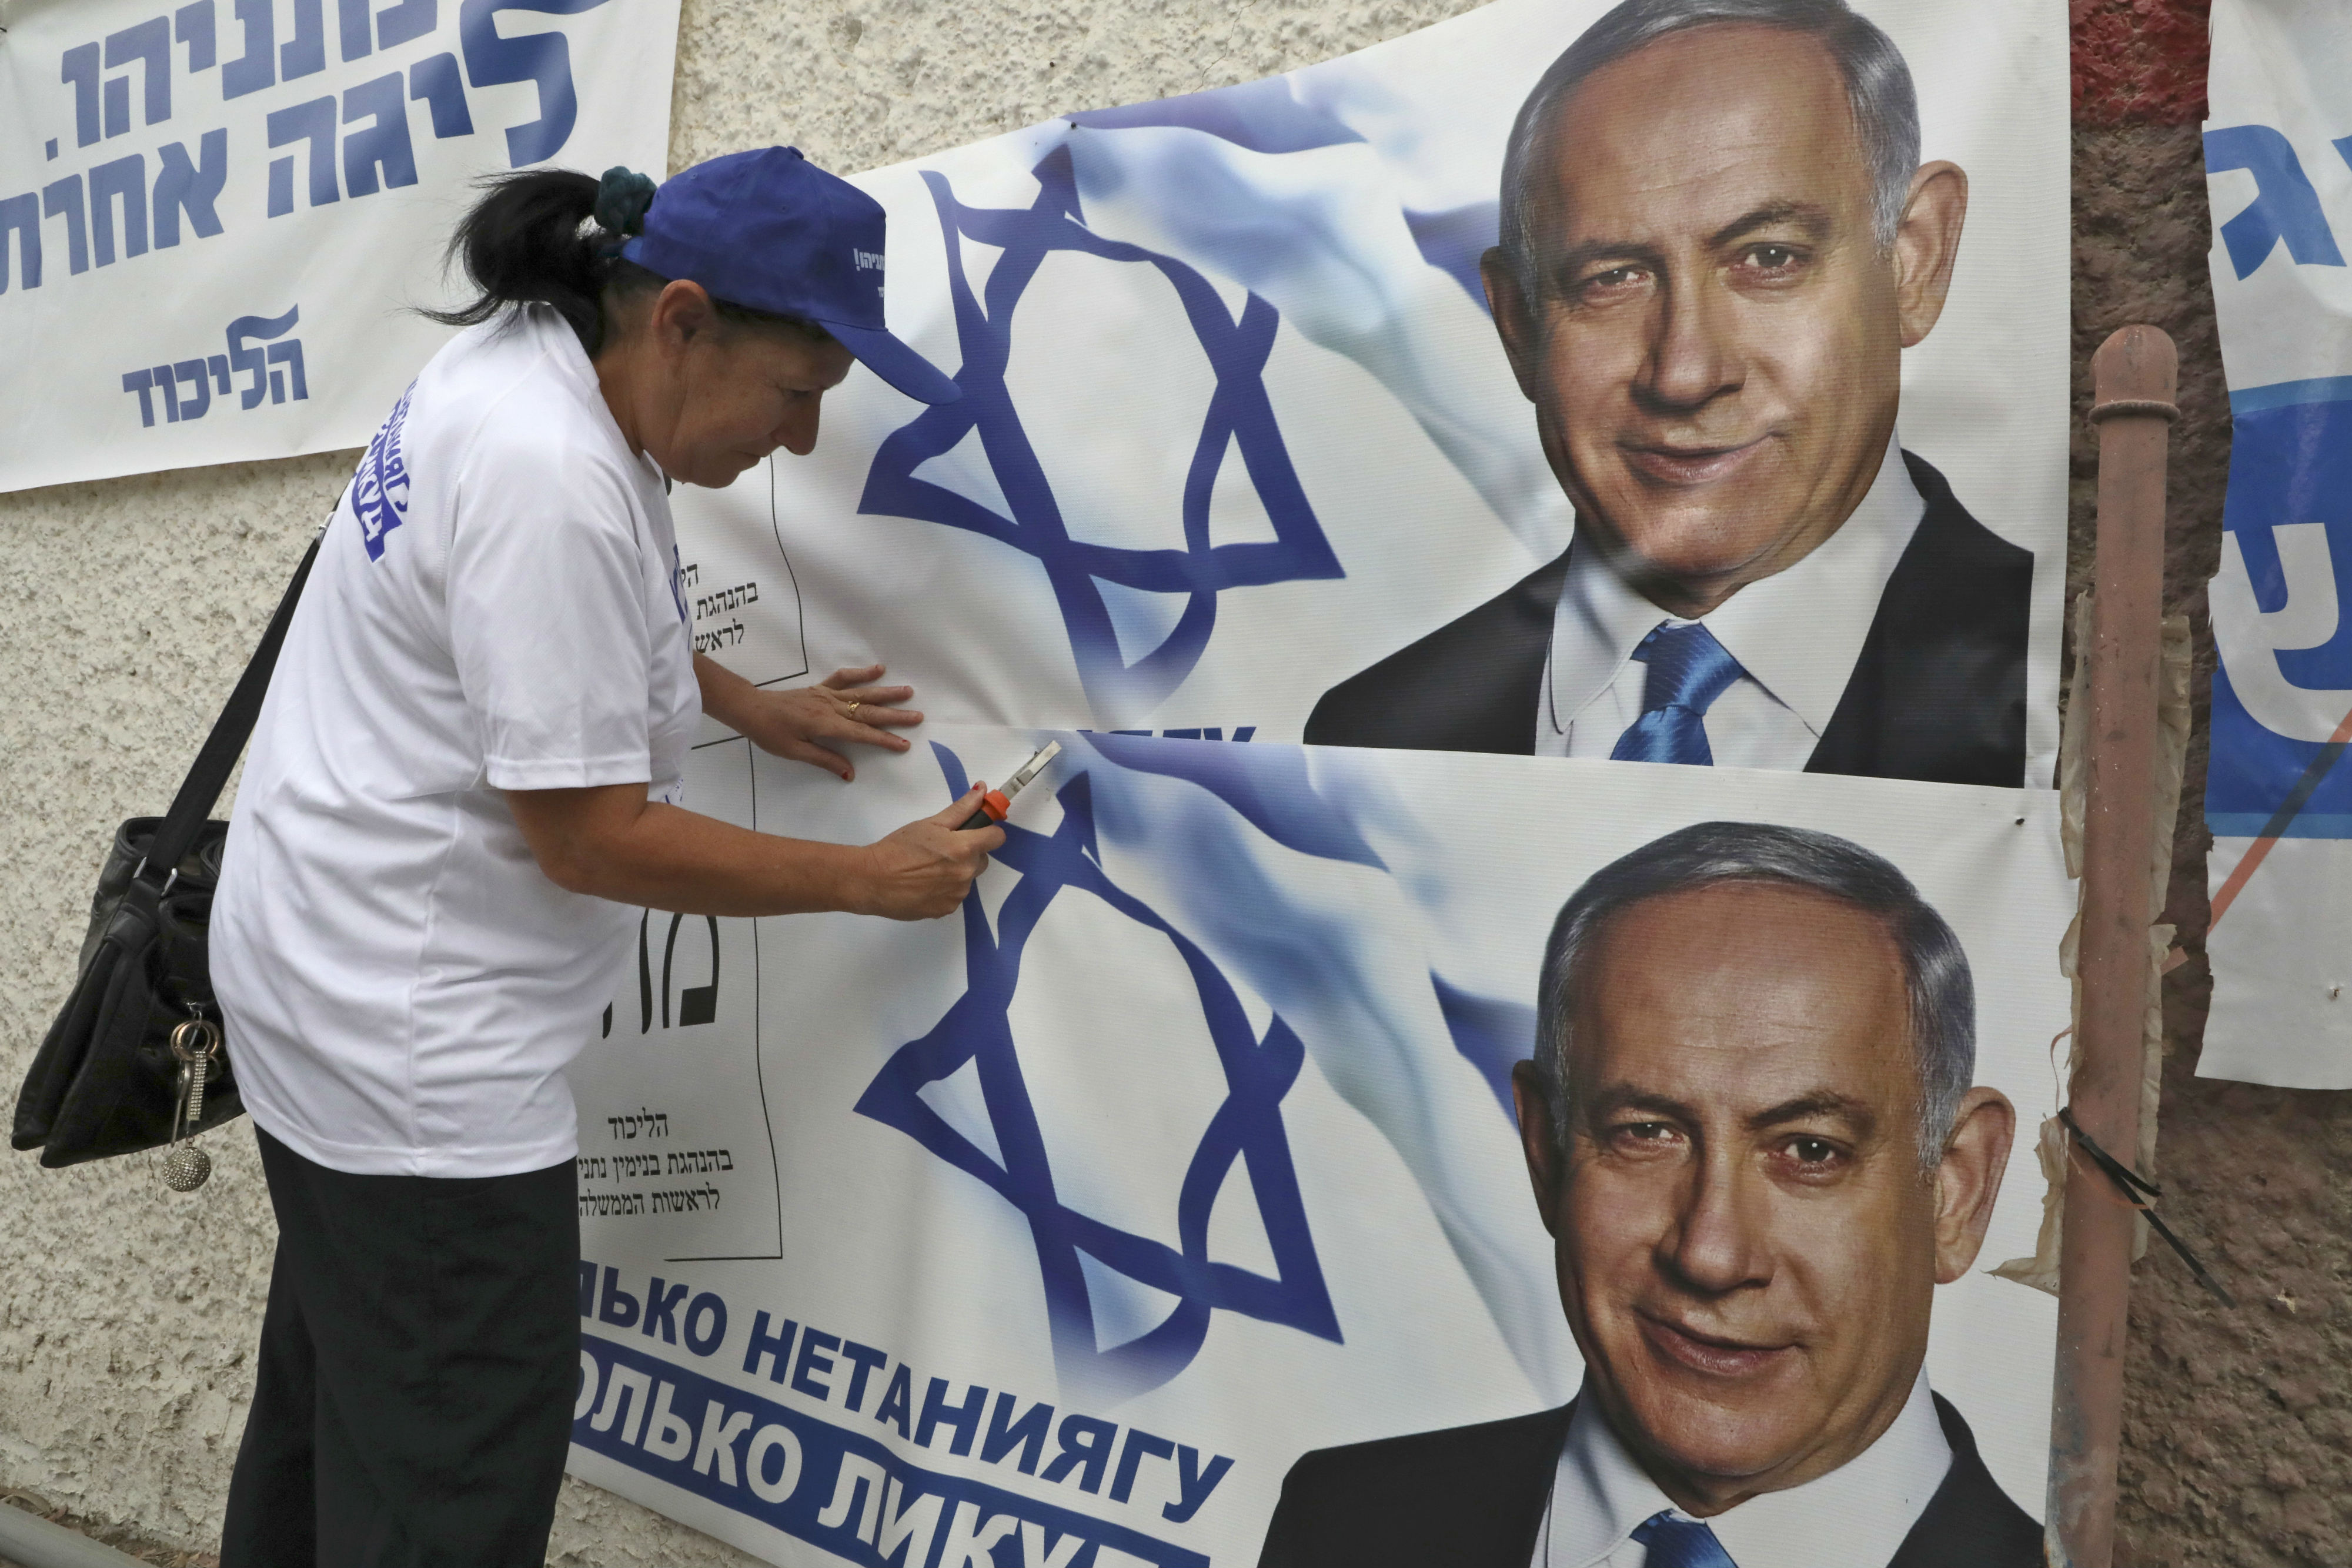 A woman places electoral banners for the Likud party showing chairman and Israeli Prime Minister Benjamin Netanyahu in the southern Israeli city of Beersheva (AFP)